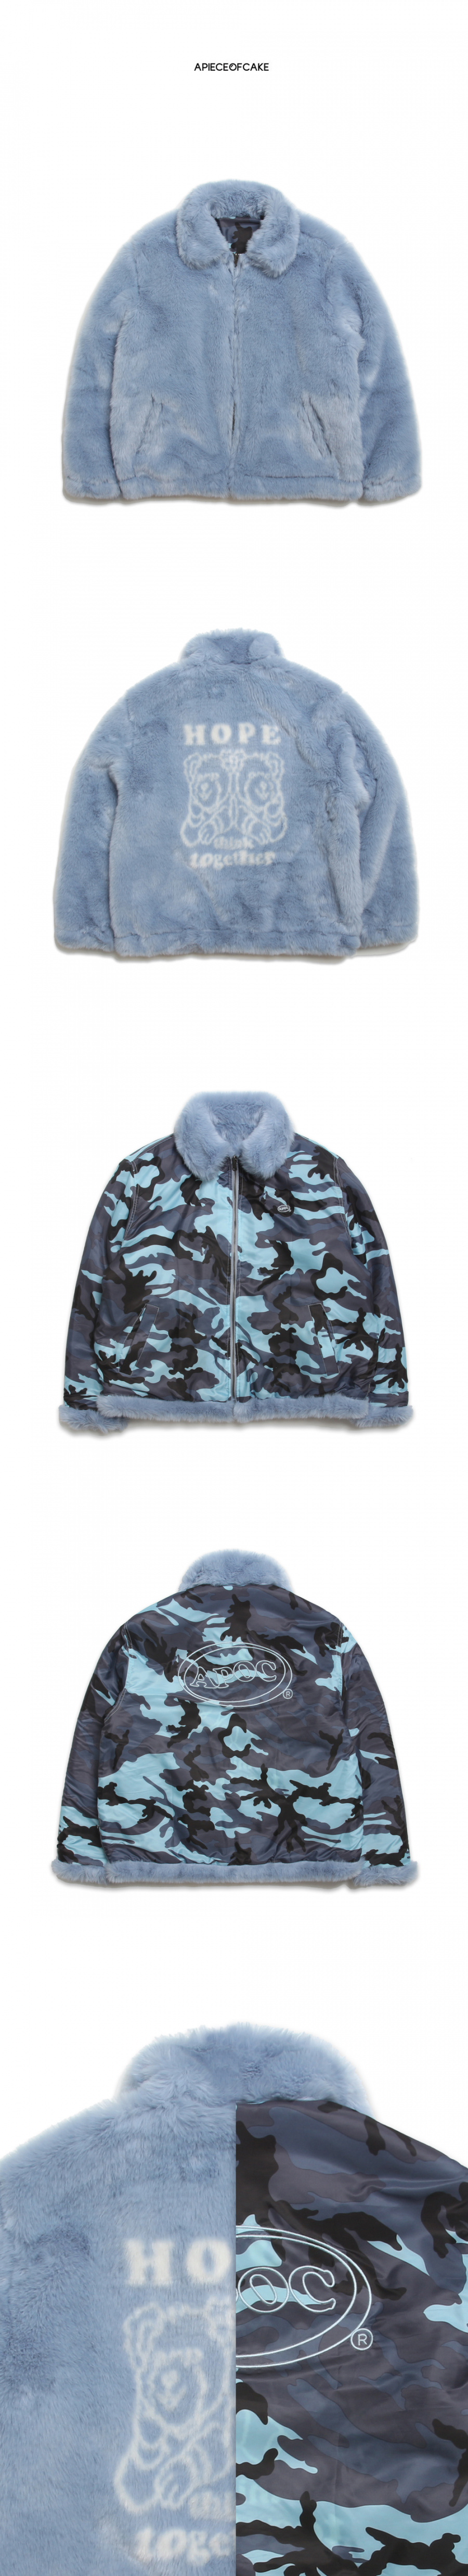 어피스오브케이크(APOC) HTT Fur Jacket_Skyblue